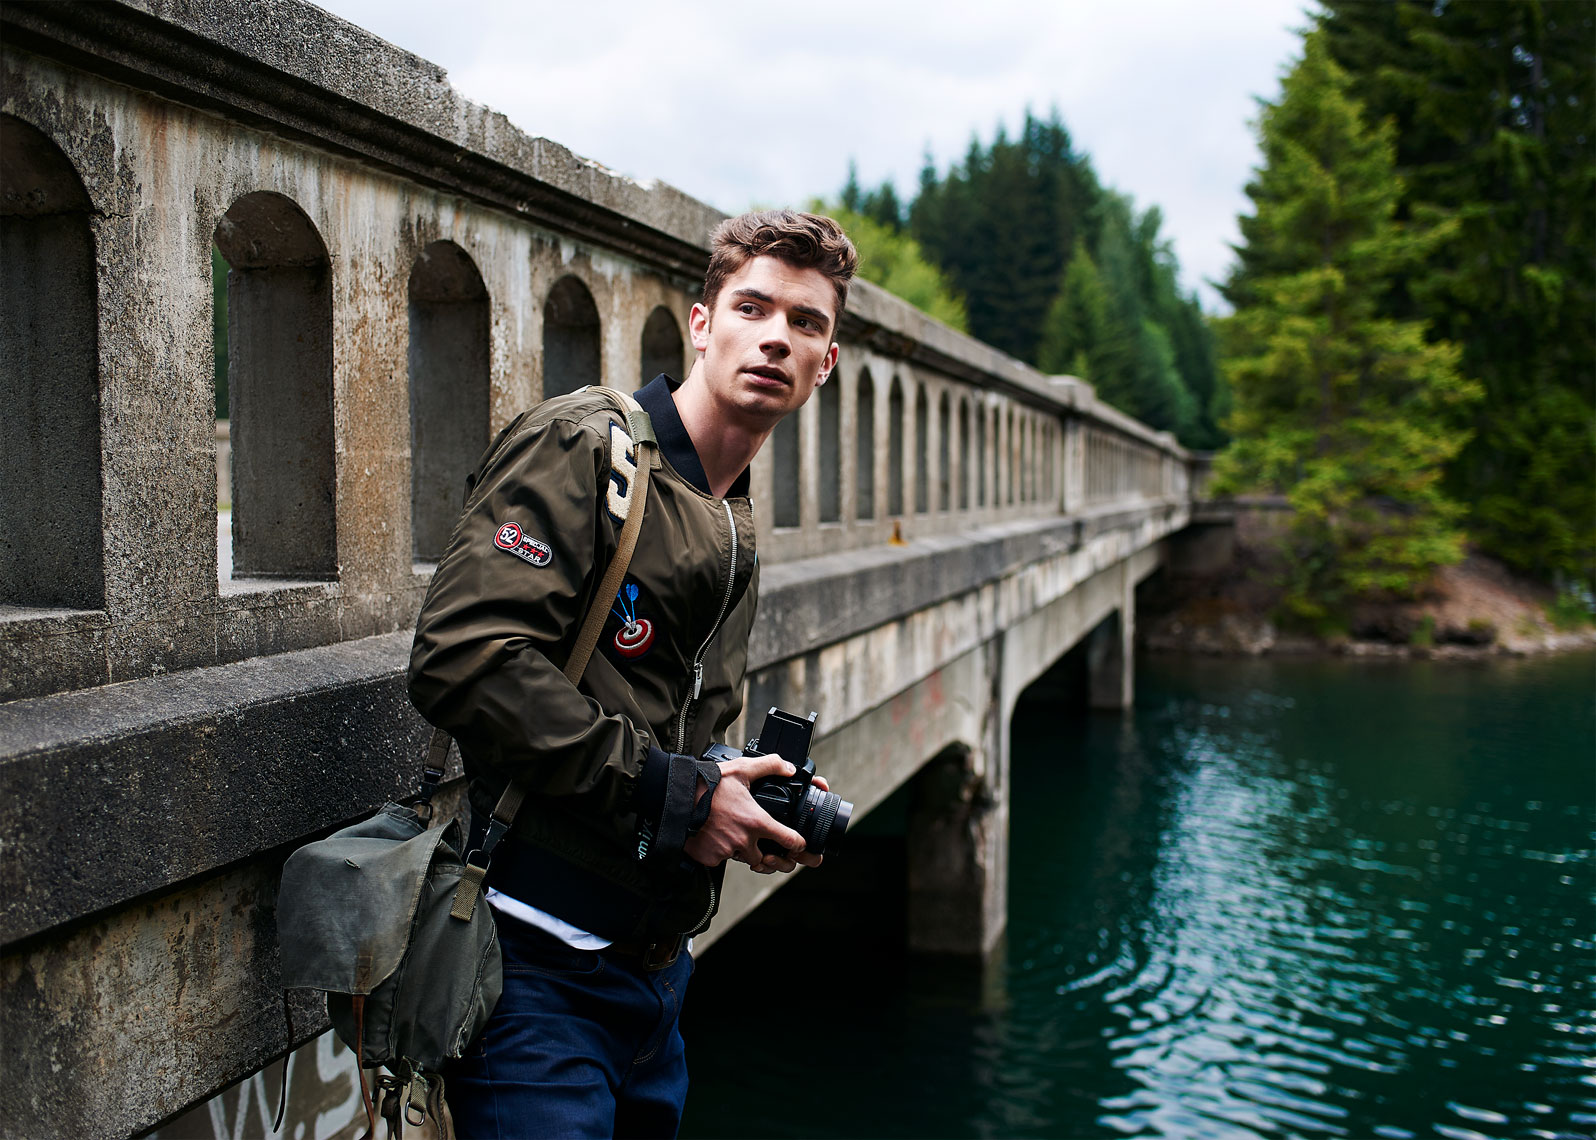 Seattle Lifestyle photographer documents man by a bridge